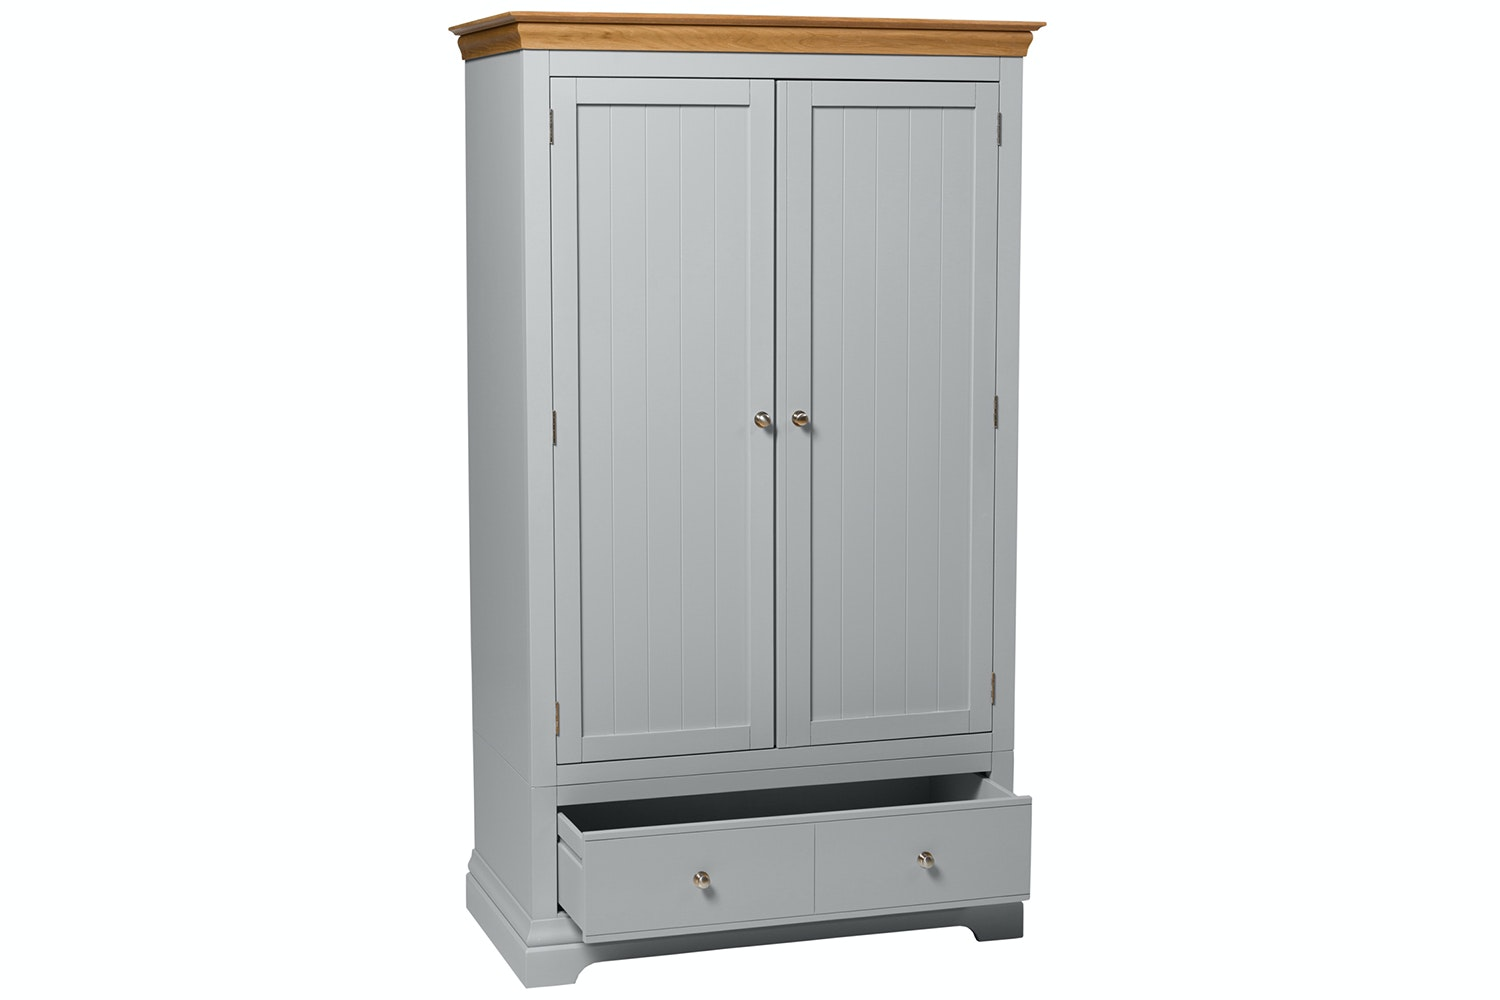 Ascott Wardrobe 2 Door | Colourtrend